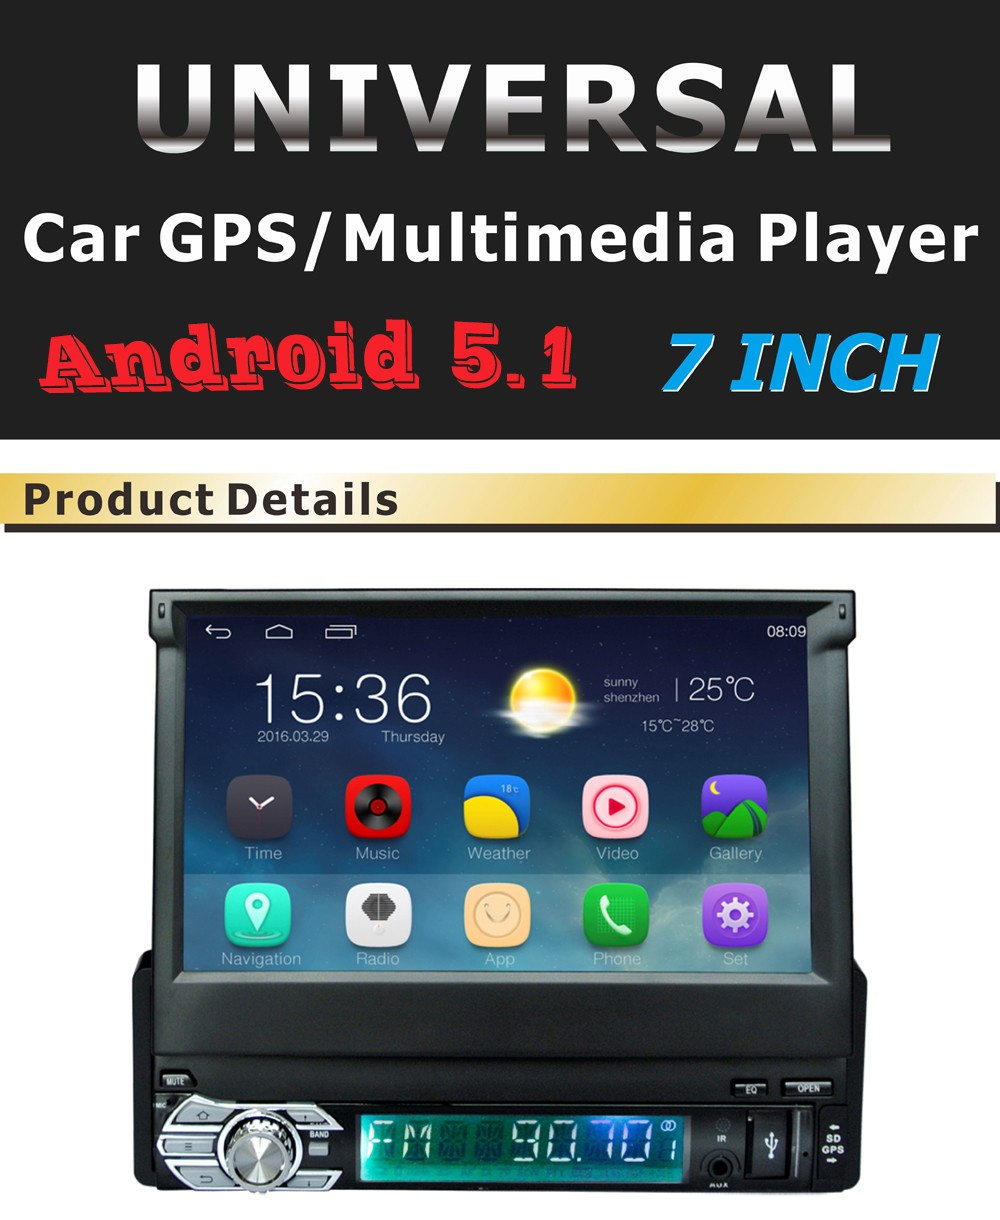 7 inch Capacitive Touch Screen Android 1 DIN Universal GPS Navigation Car Radio Stereo11 android 5